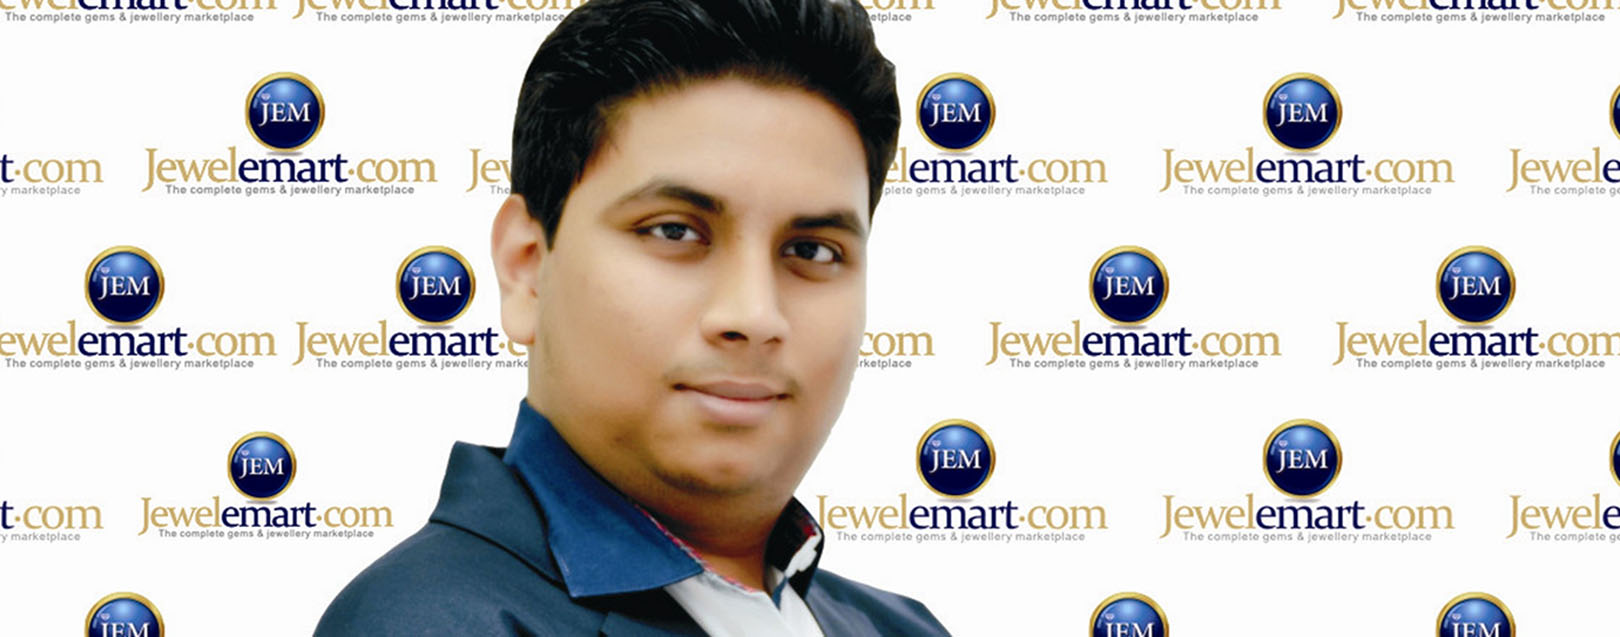 Online jewellery market is around $10 bn, which will shoot up to $18 bn in 3 yrs: Adish Shah